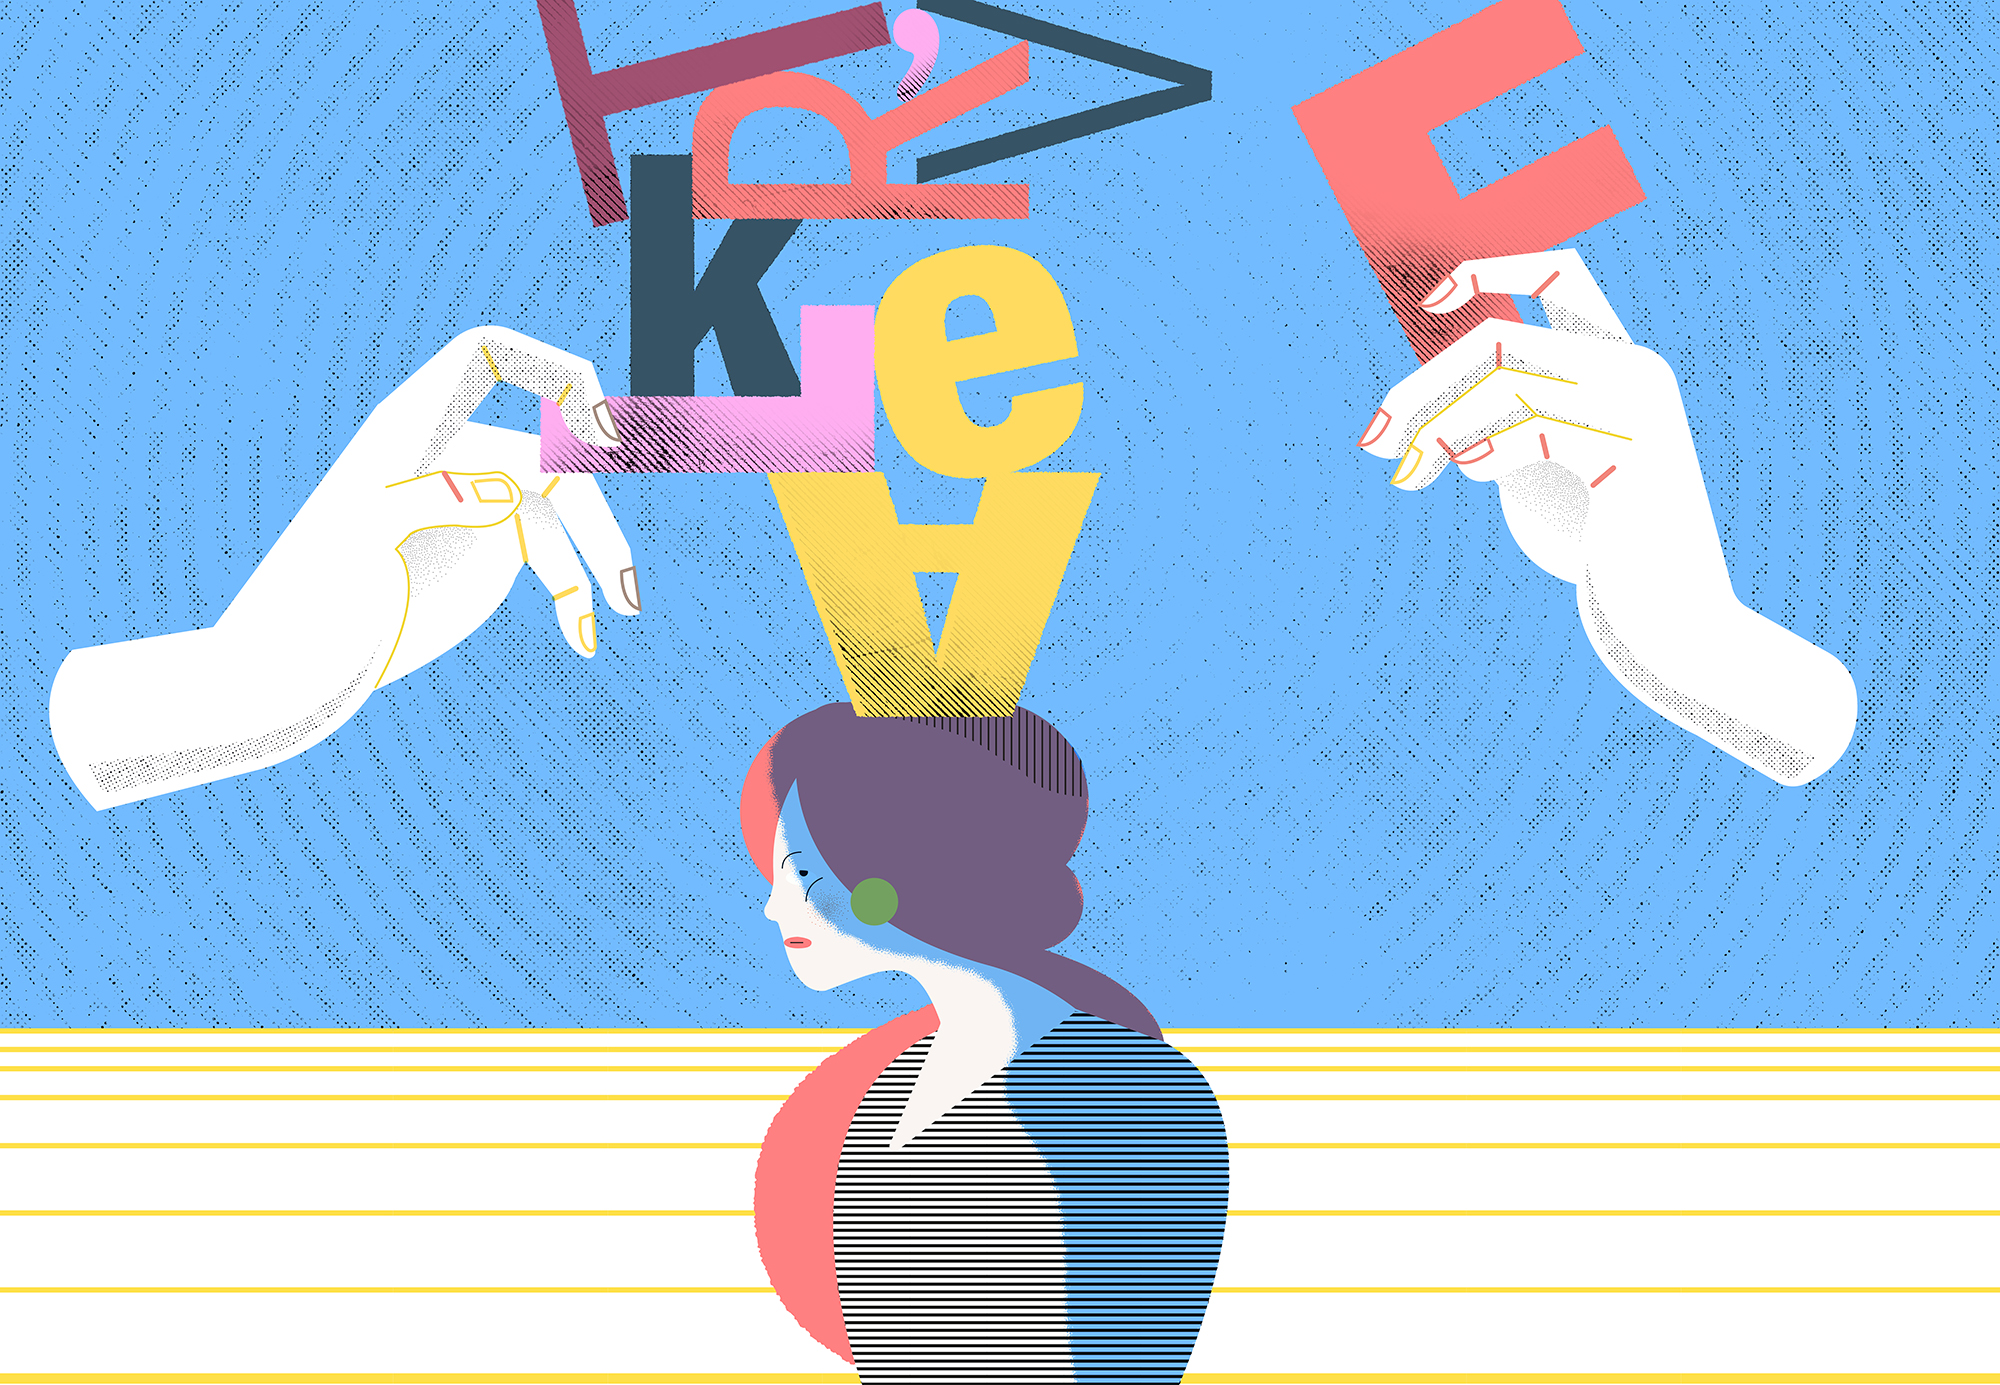 Illustration shows floating hands stacking letters on a woman's head.